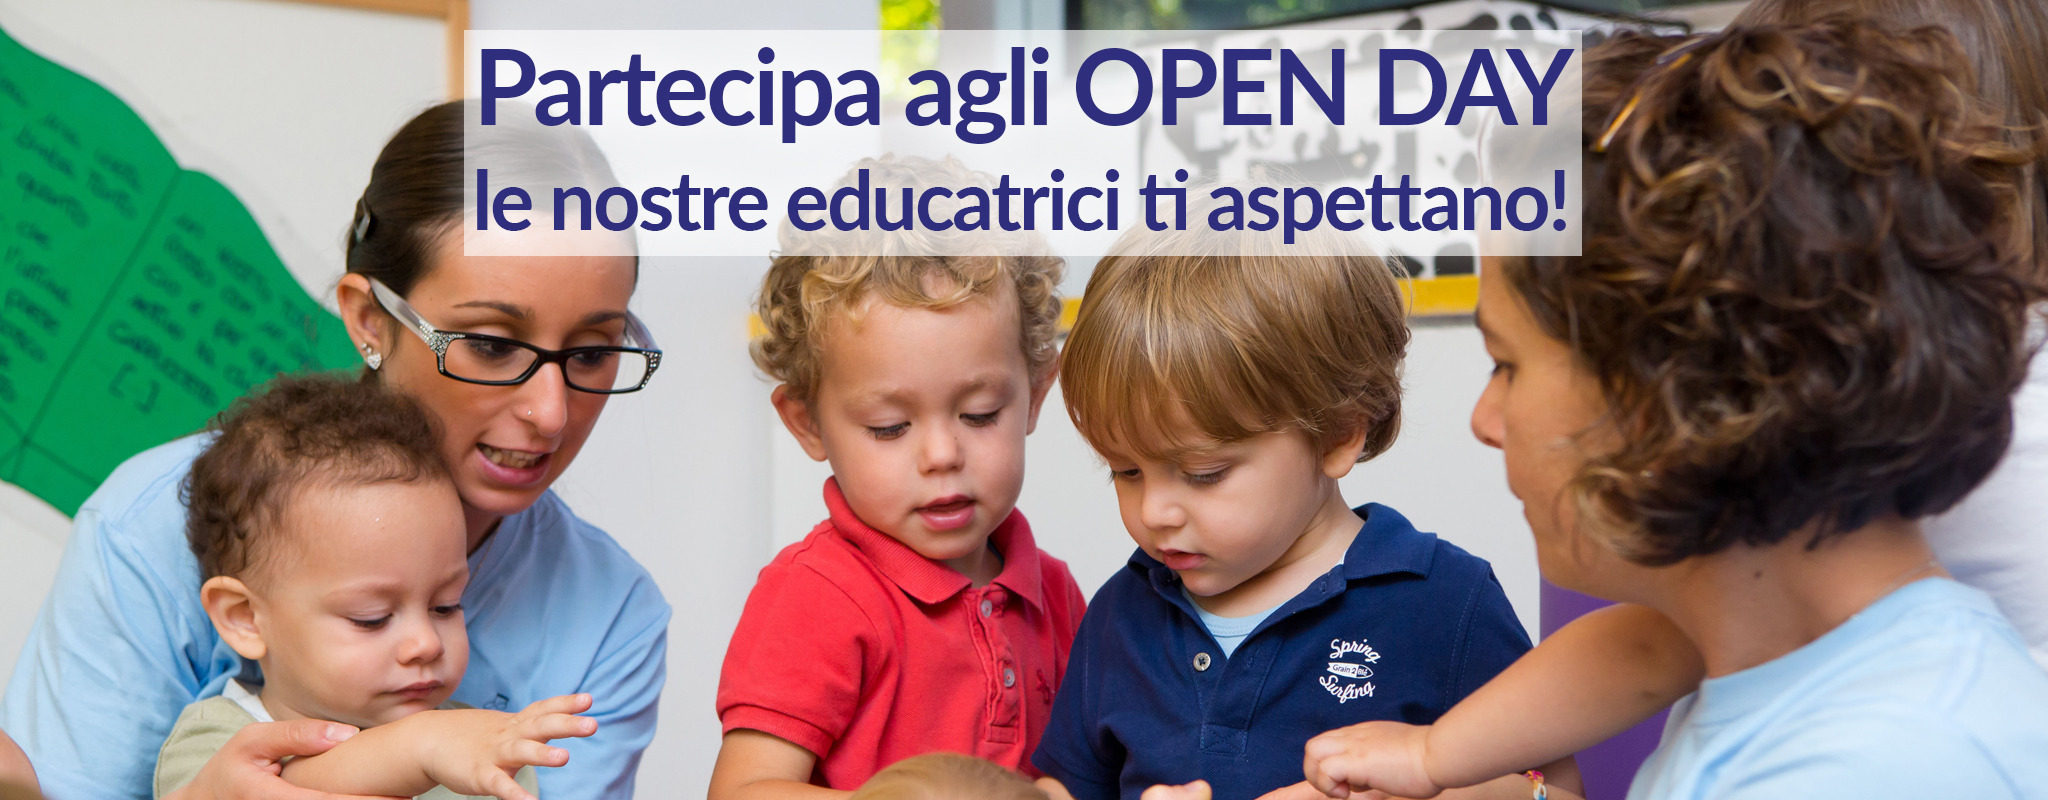 Open Day Happy Child - Asili nido e scuole dell'infanzia bilingue - Milano